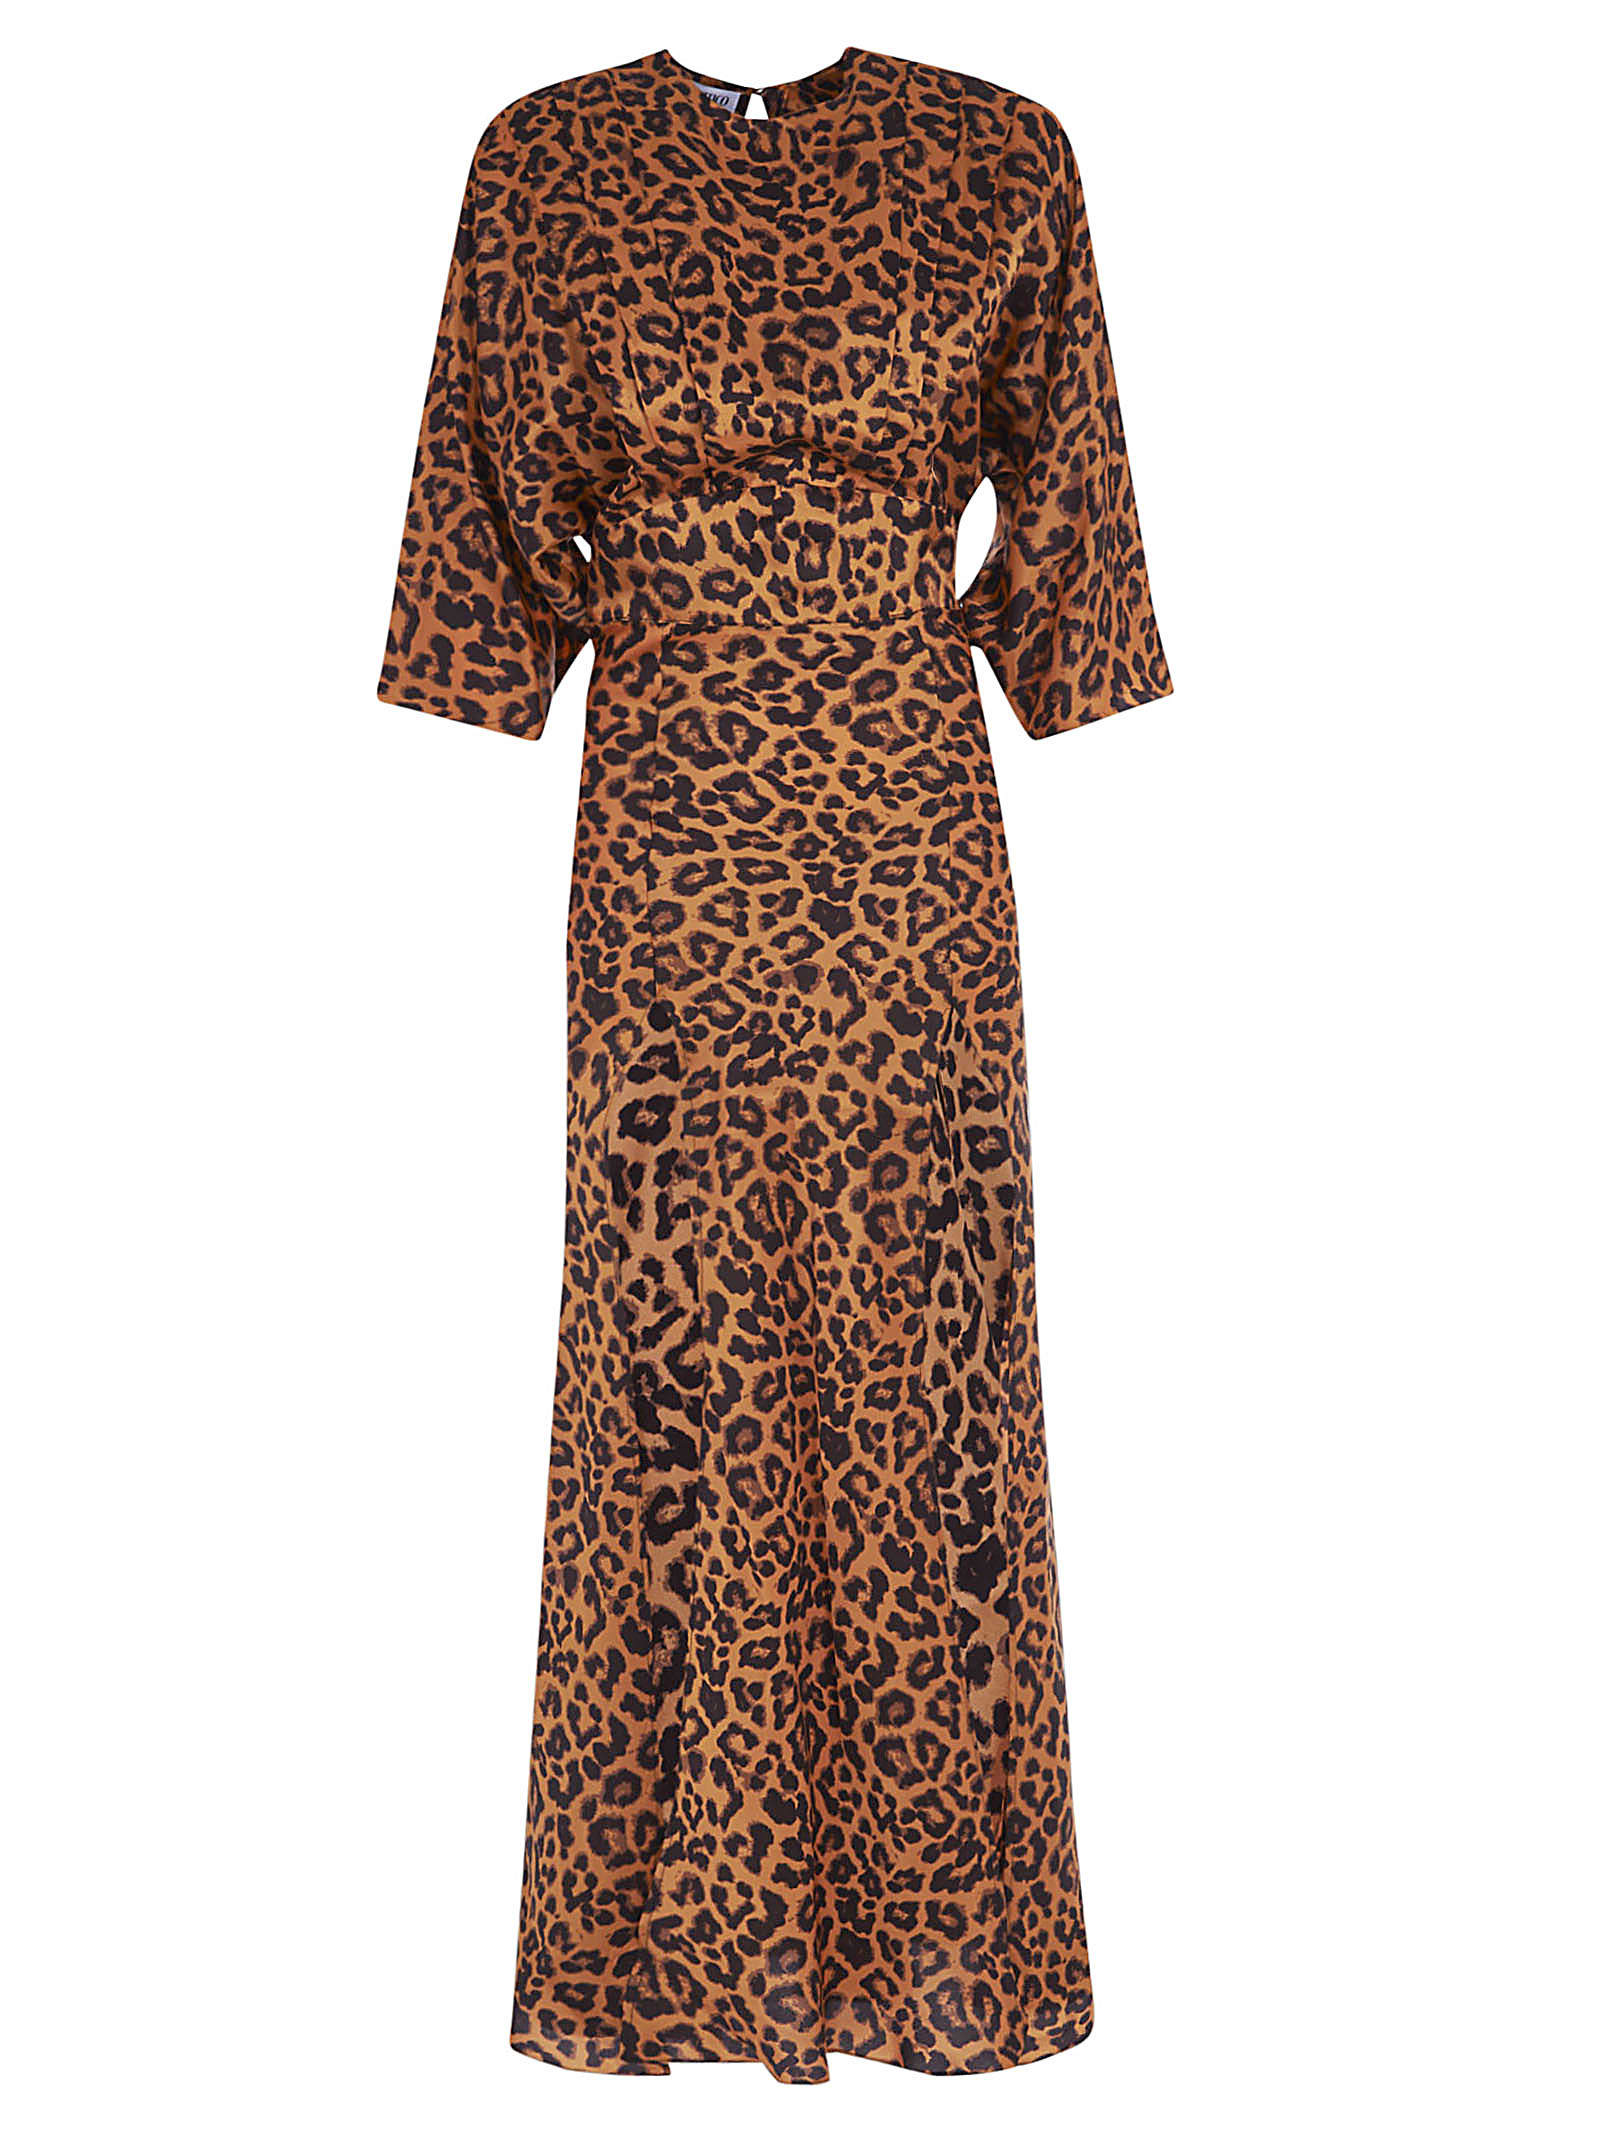 Buy The Attico Leopard Print Maxi Dress online, shop The Attico with free shipping